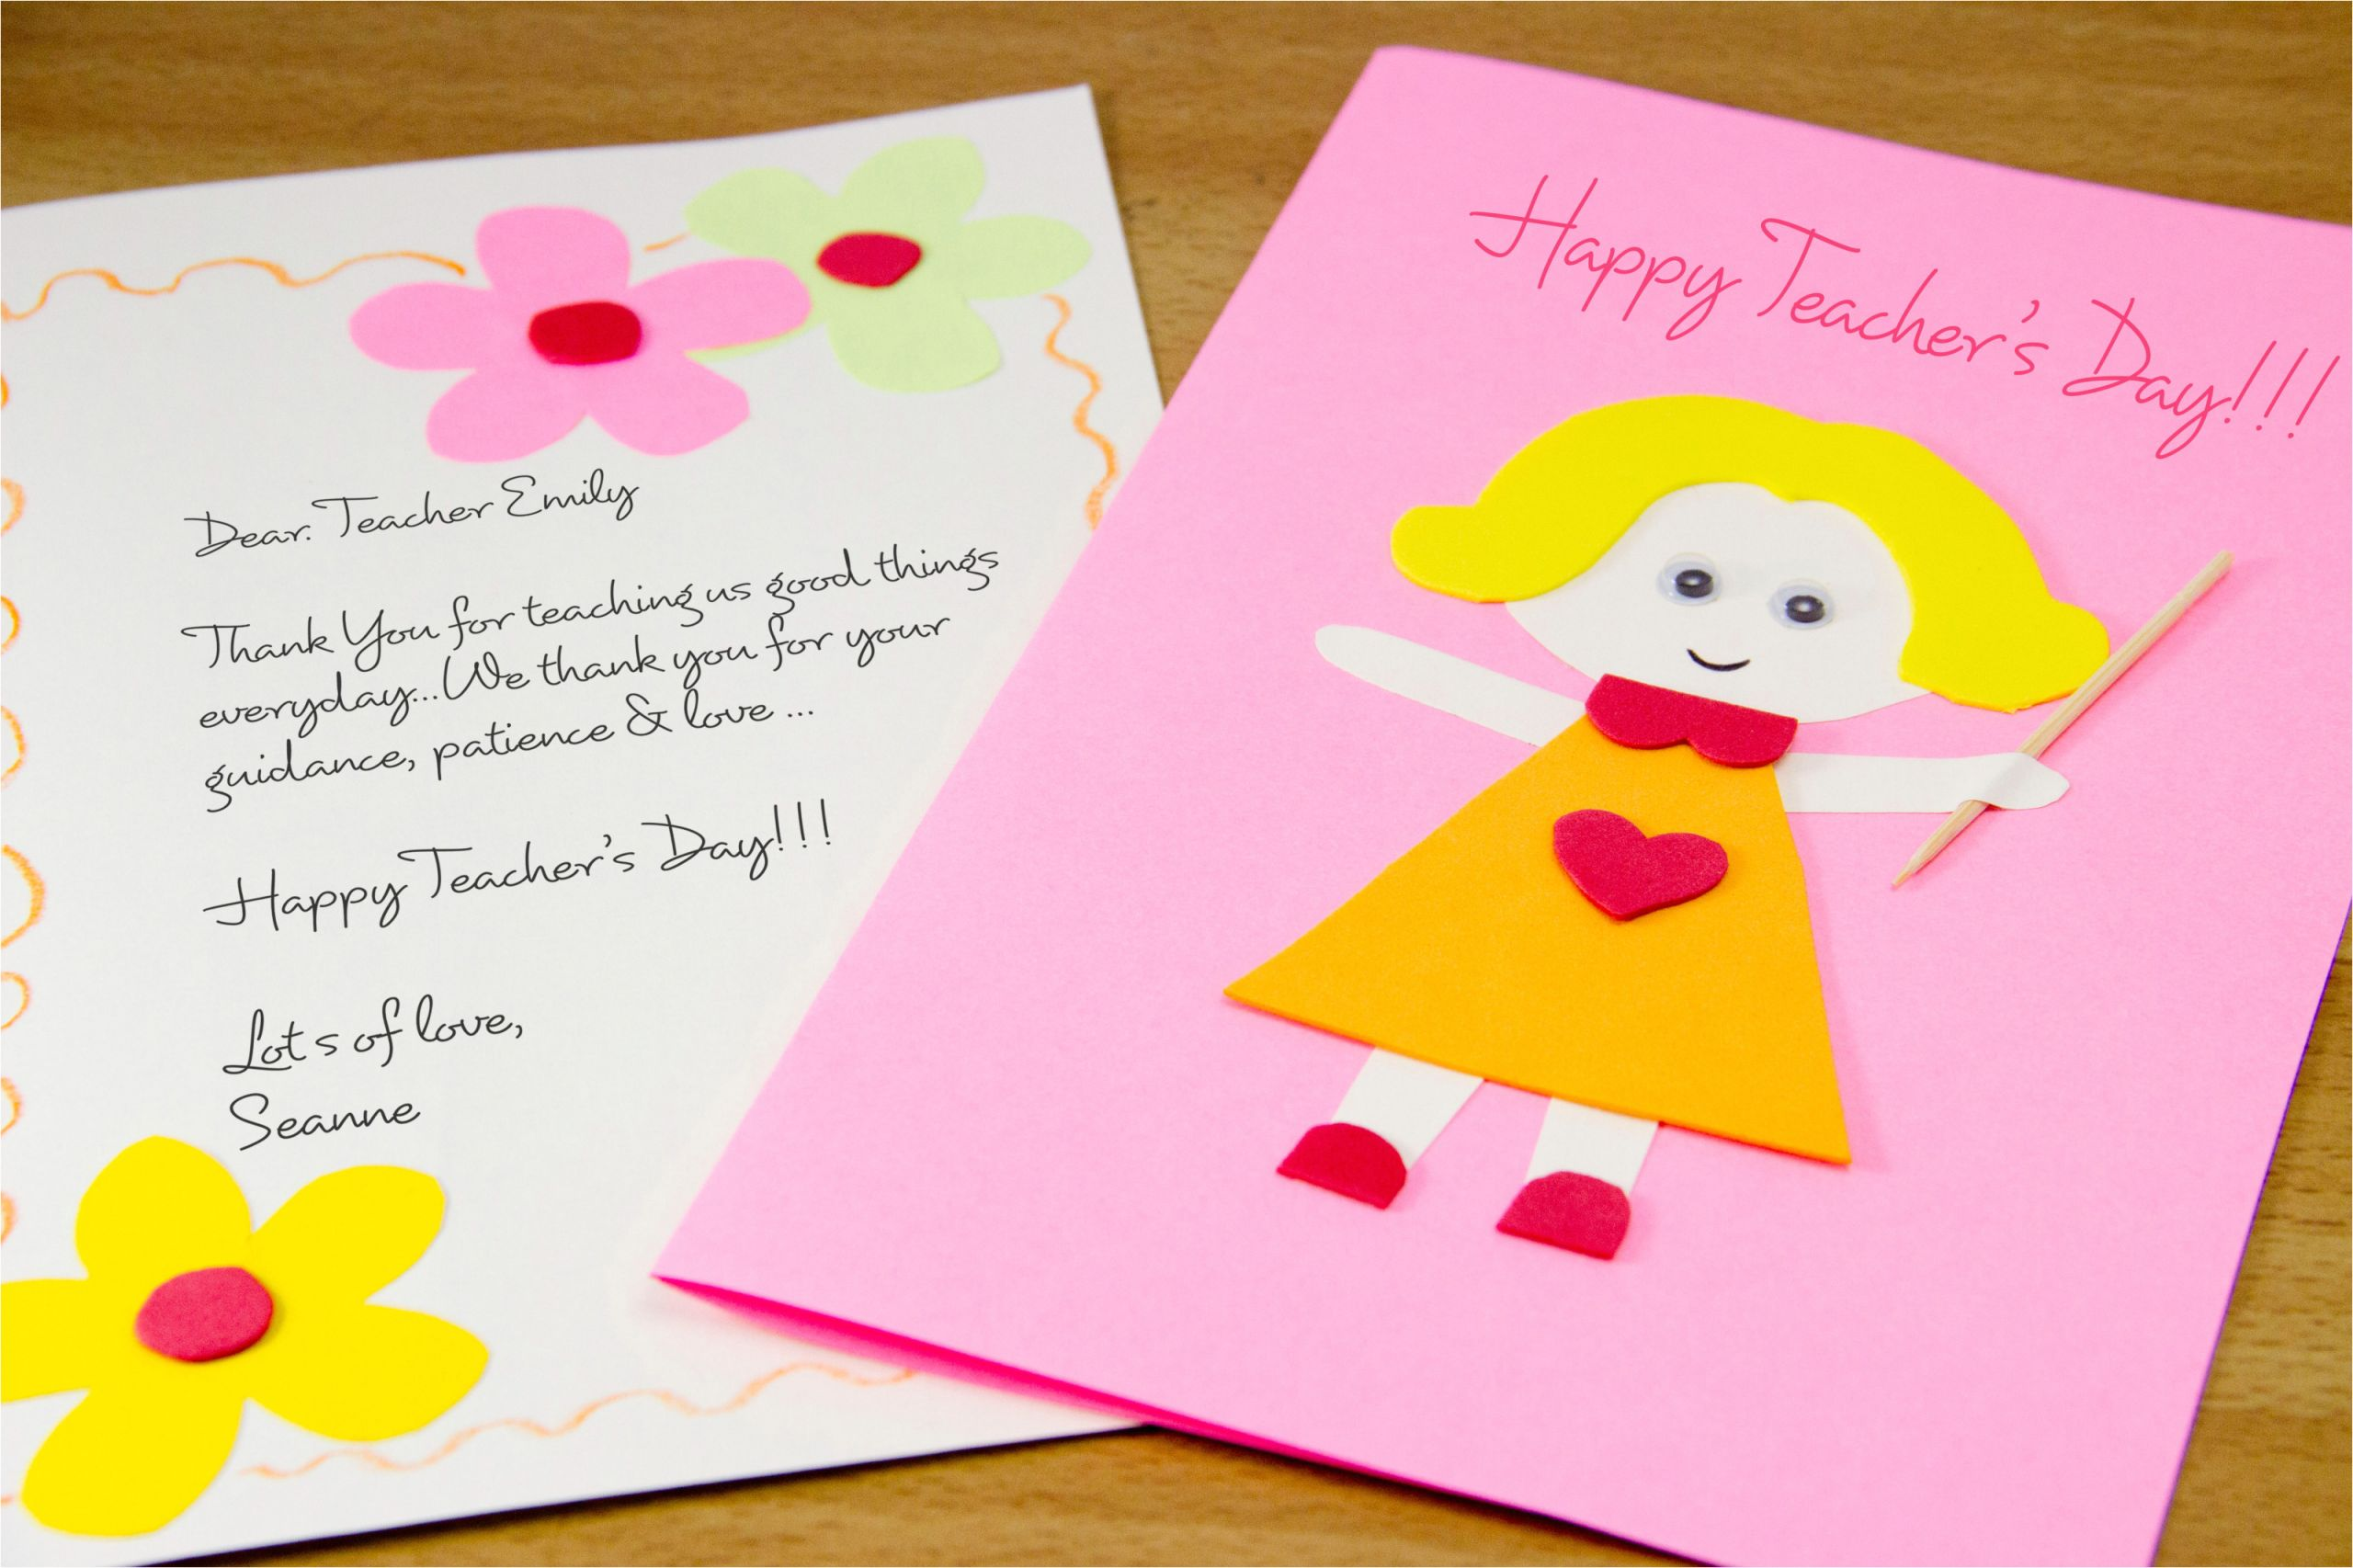 Easy Card Making Ideas for Teachers Day How to Make A Homemade Teacher S Day Card 7 Steps with